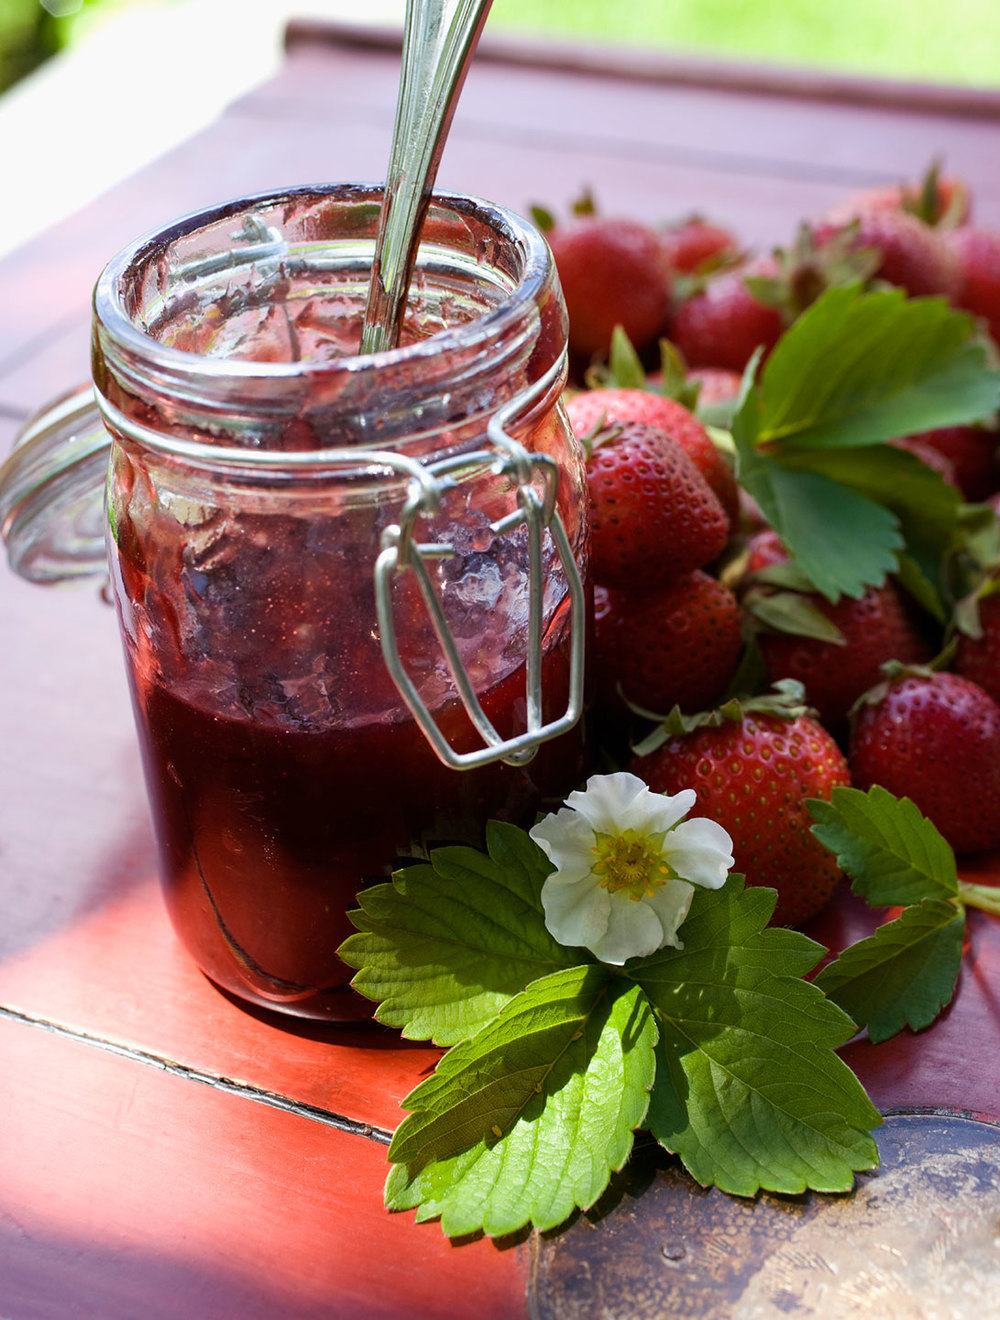 Florida Strawberry Jam